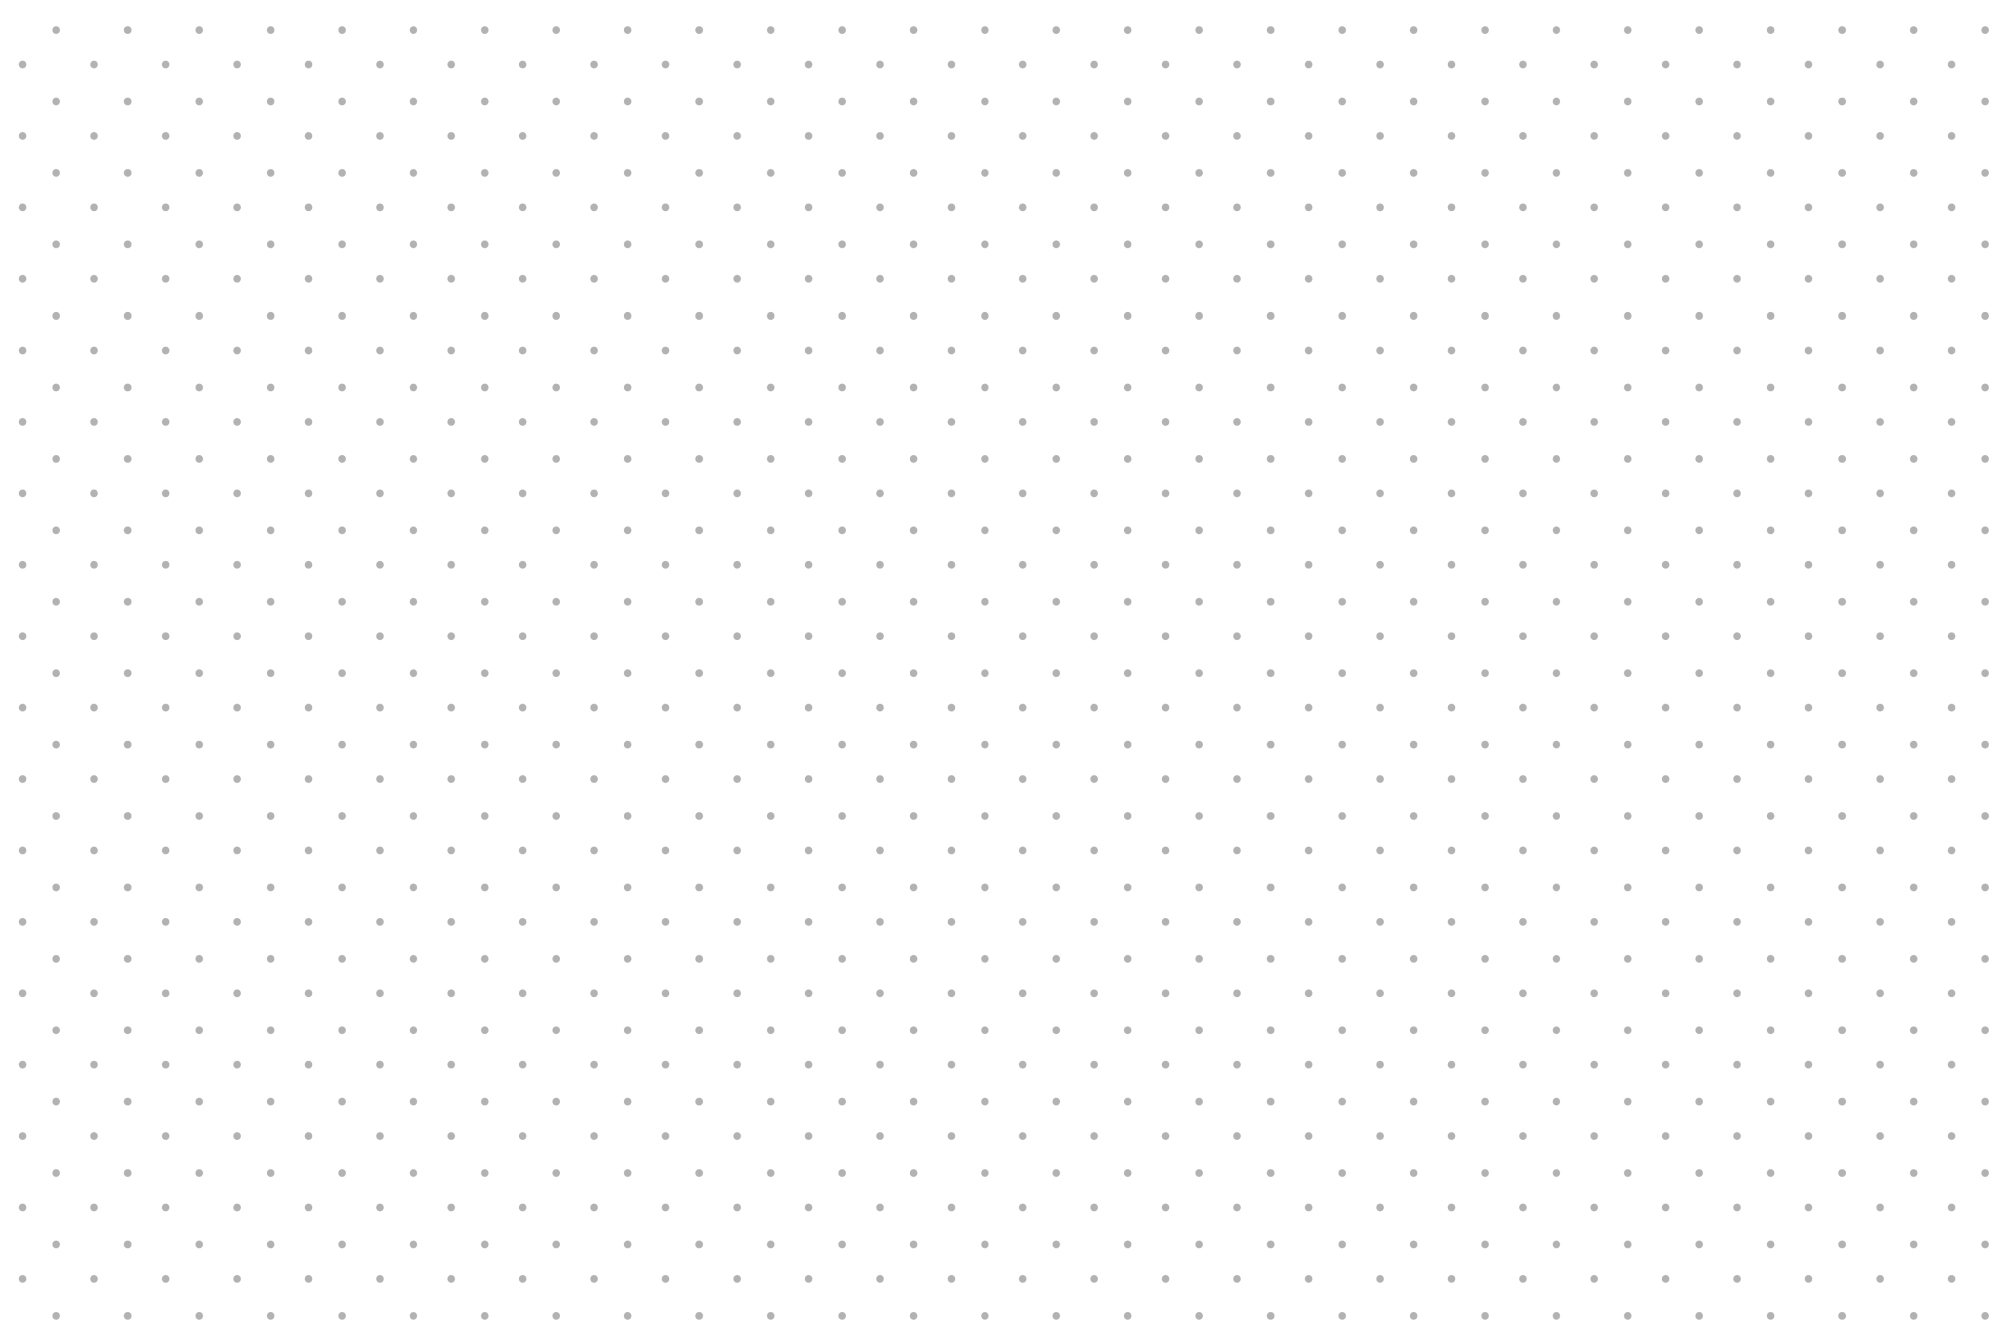 Dotted/striped seamless patterns. example image 2